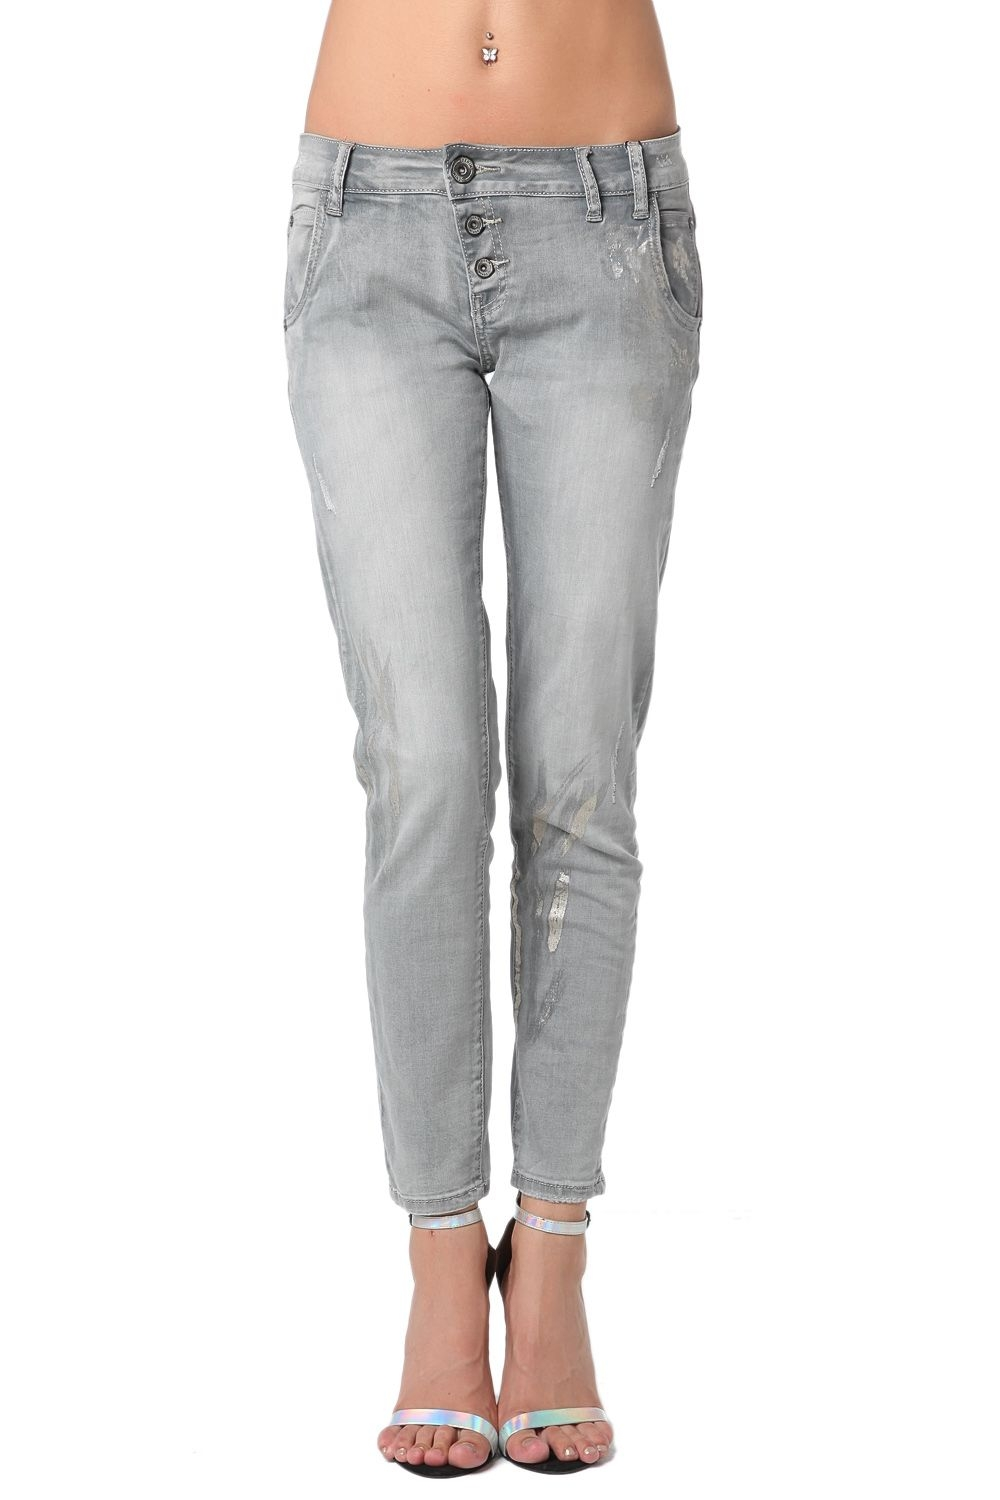 e1b9c5819a Jeans Donna – Outlet Online – Moda all'ingrosso - Q2 Ingrosso Italia ...